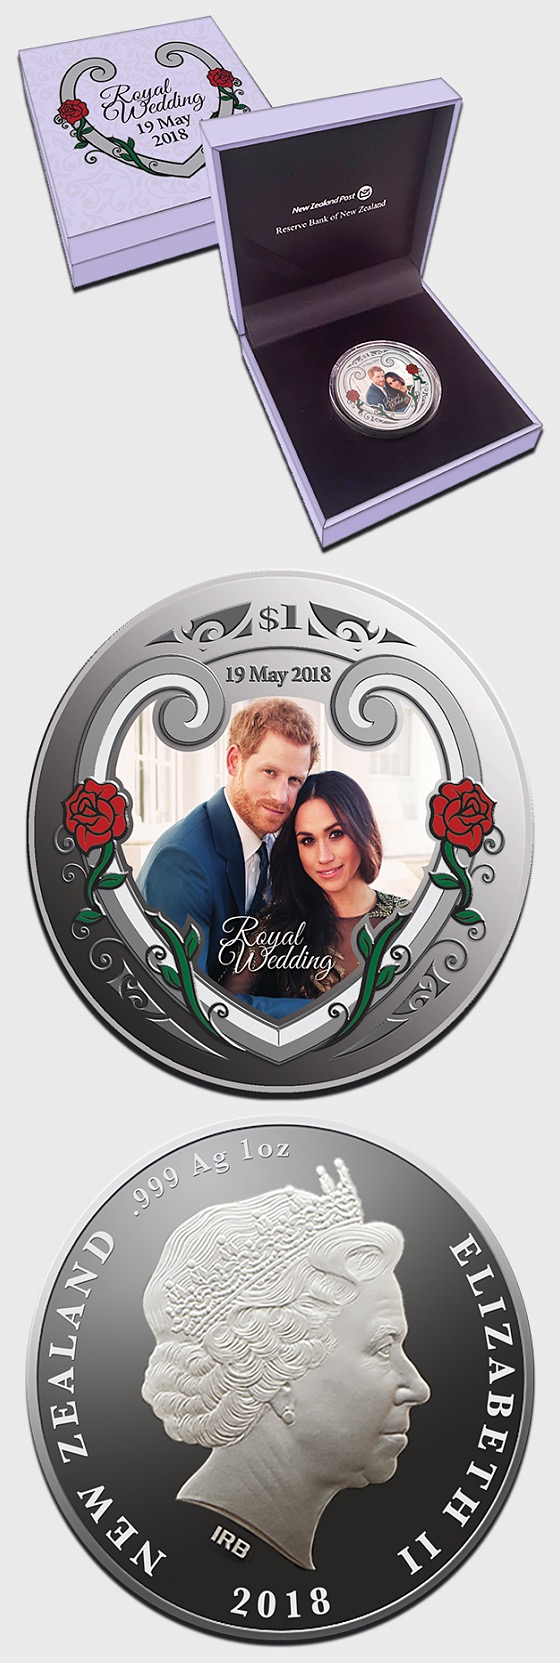 2018 Royal Wedding Silver Proof Coin - Commemorative